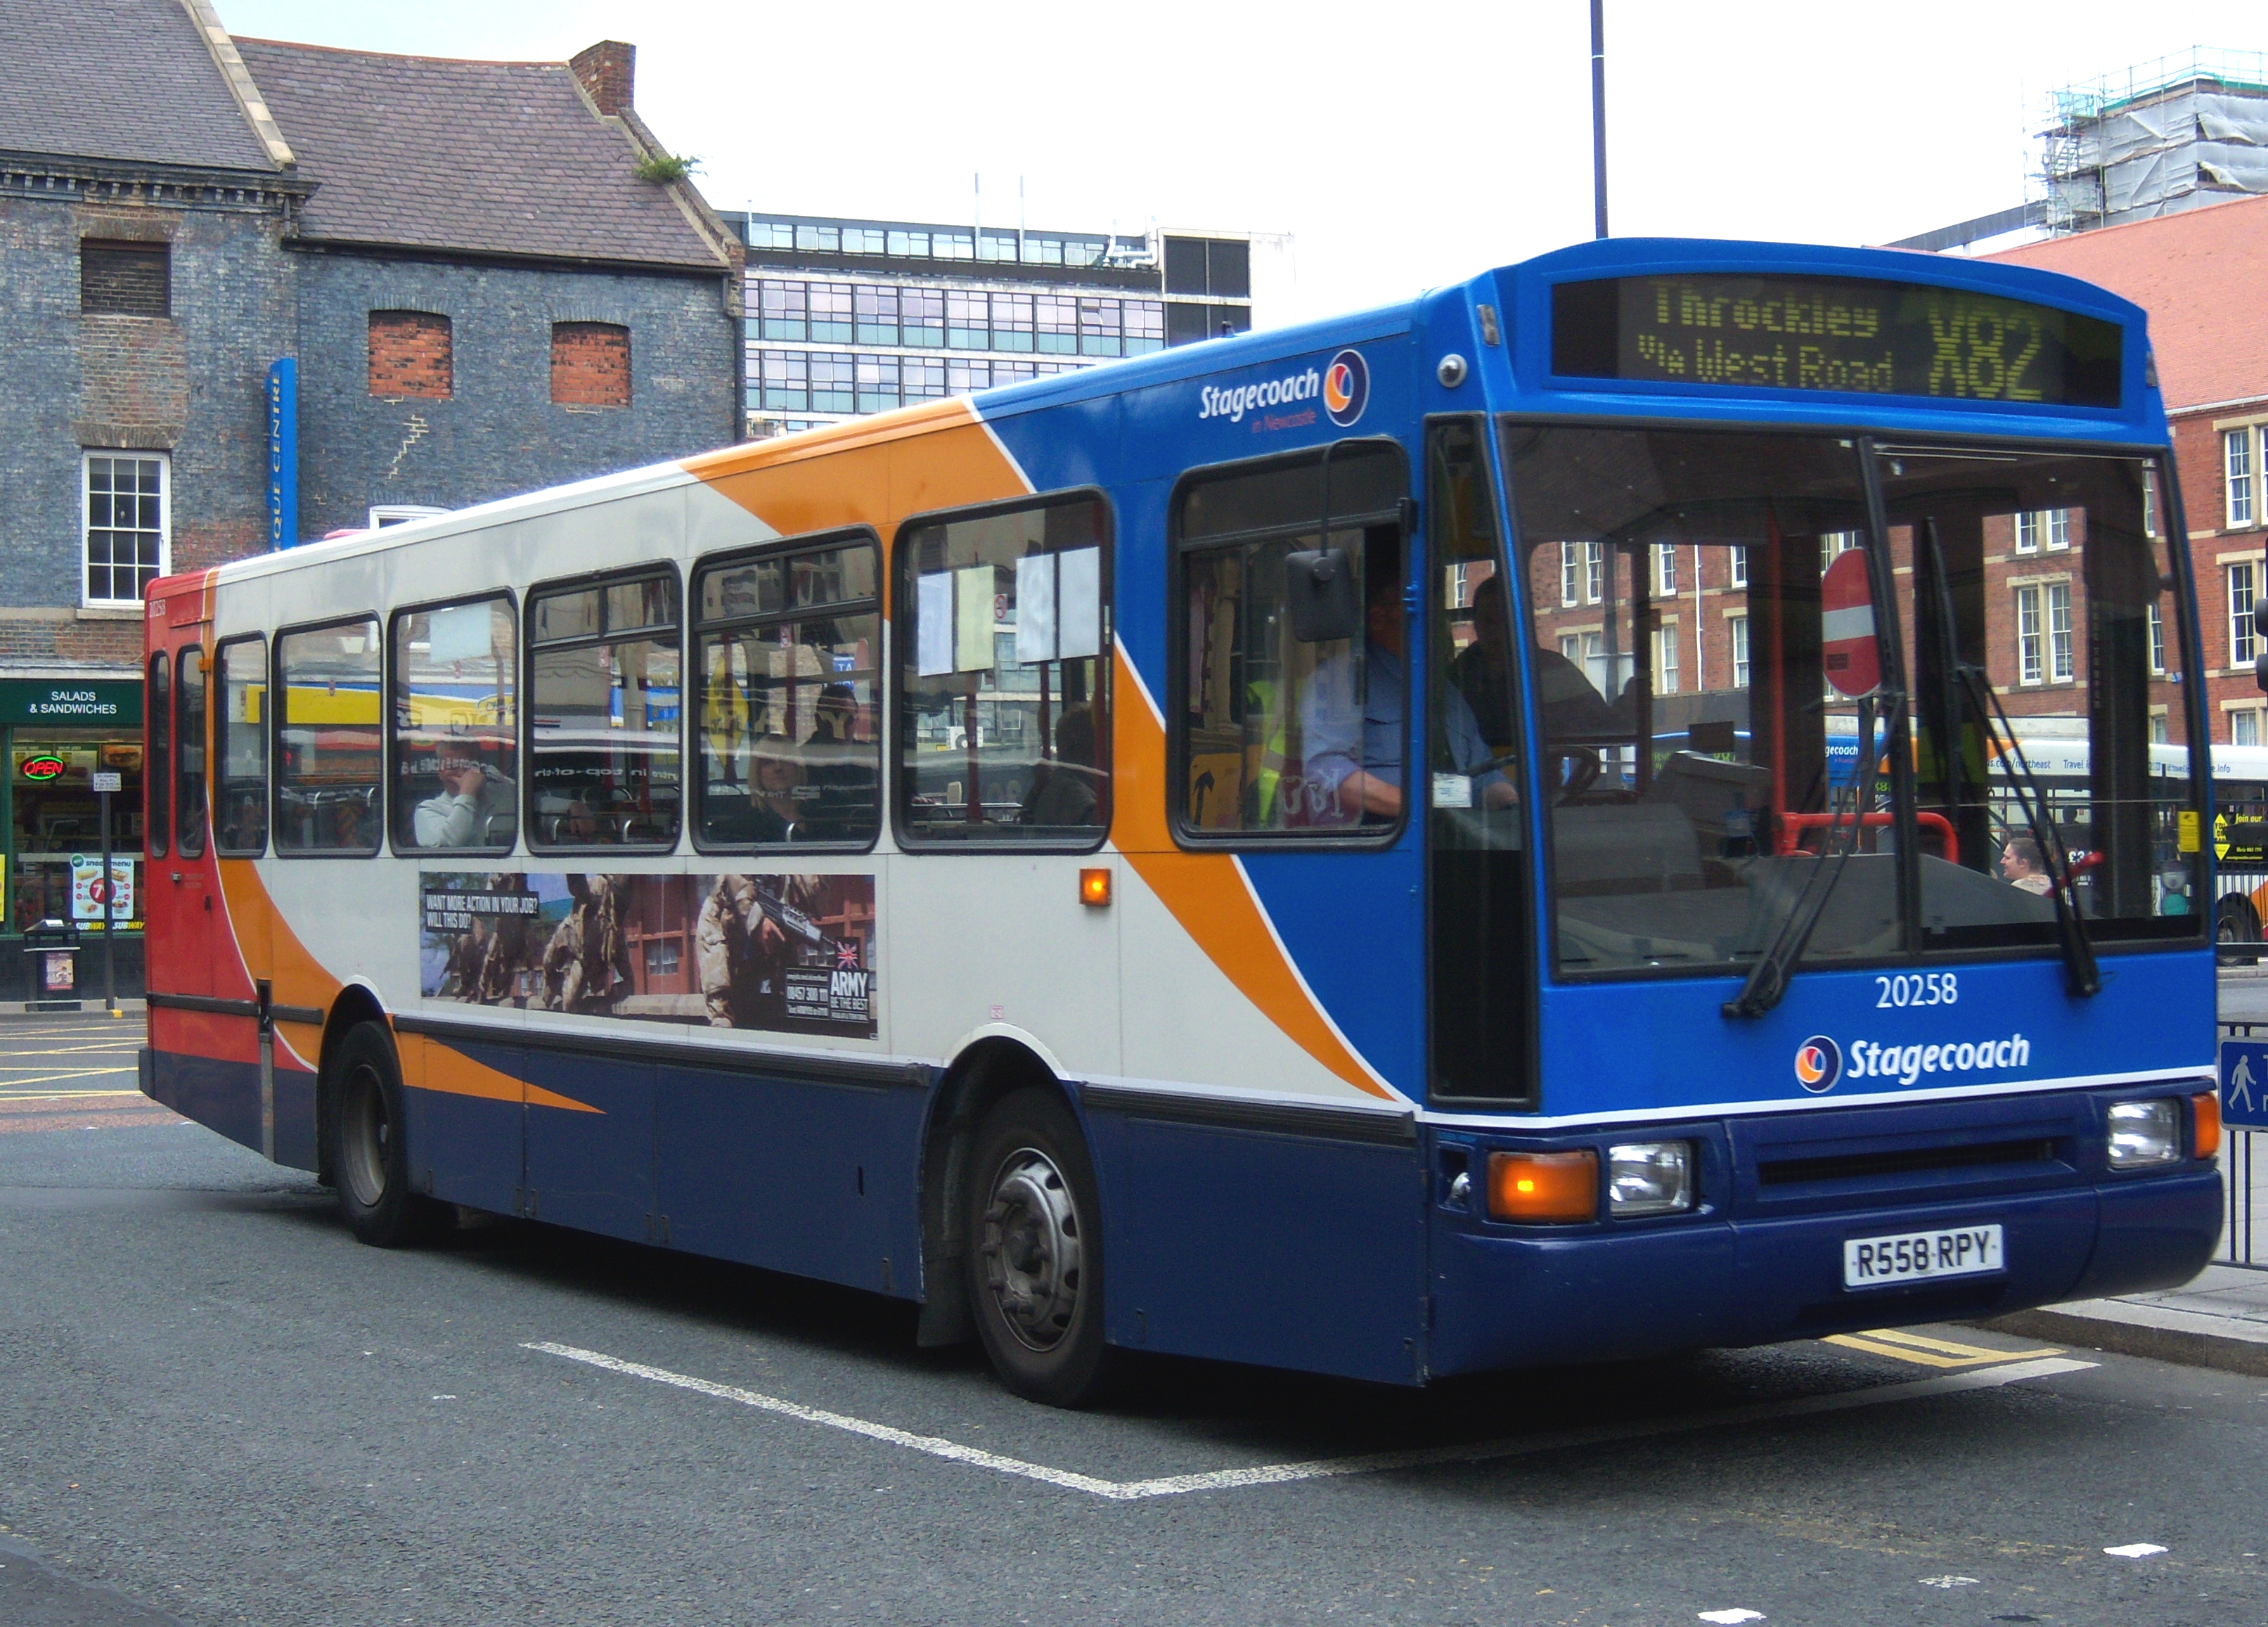 Stagecoach_in_Newcastle_bus_20258_Volvo_B10M_Northern_Counties_Paladin_barrel_style_R558_RPY_in_Newcastle